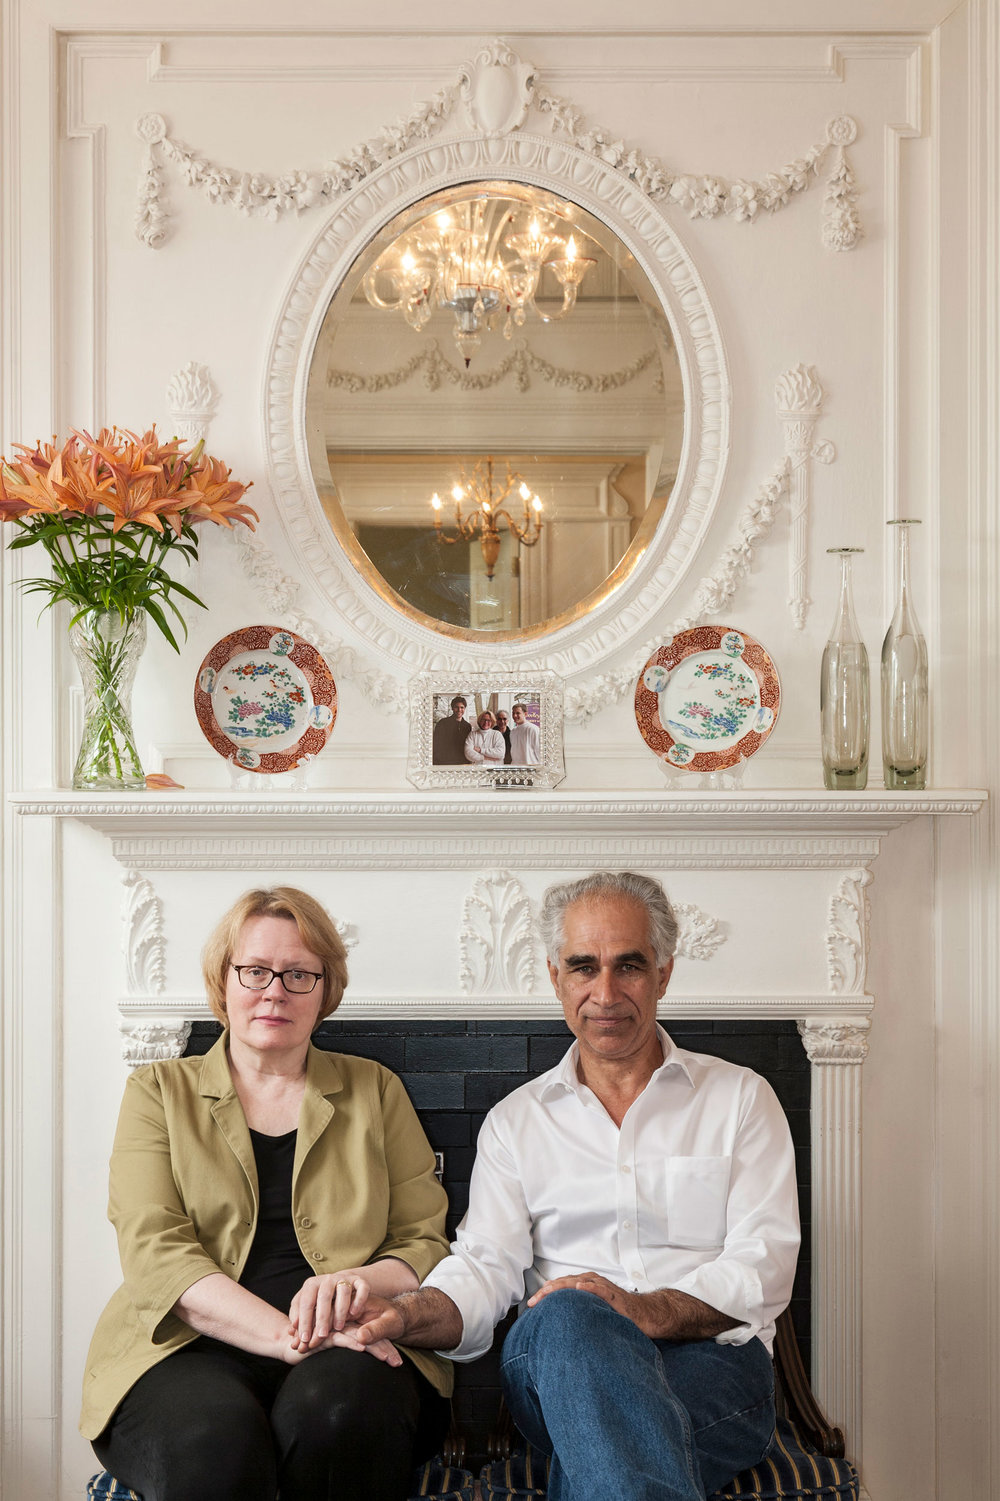 Lara and Raymond Saba, owners of Embassy Circle Guest House